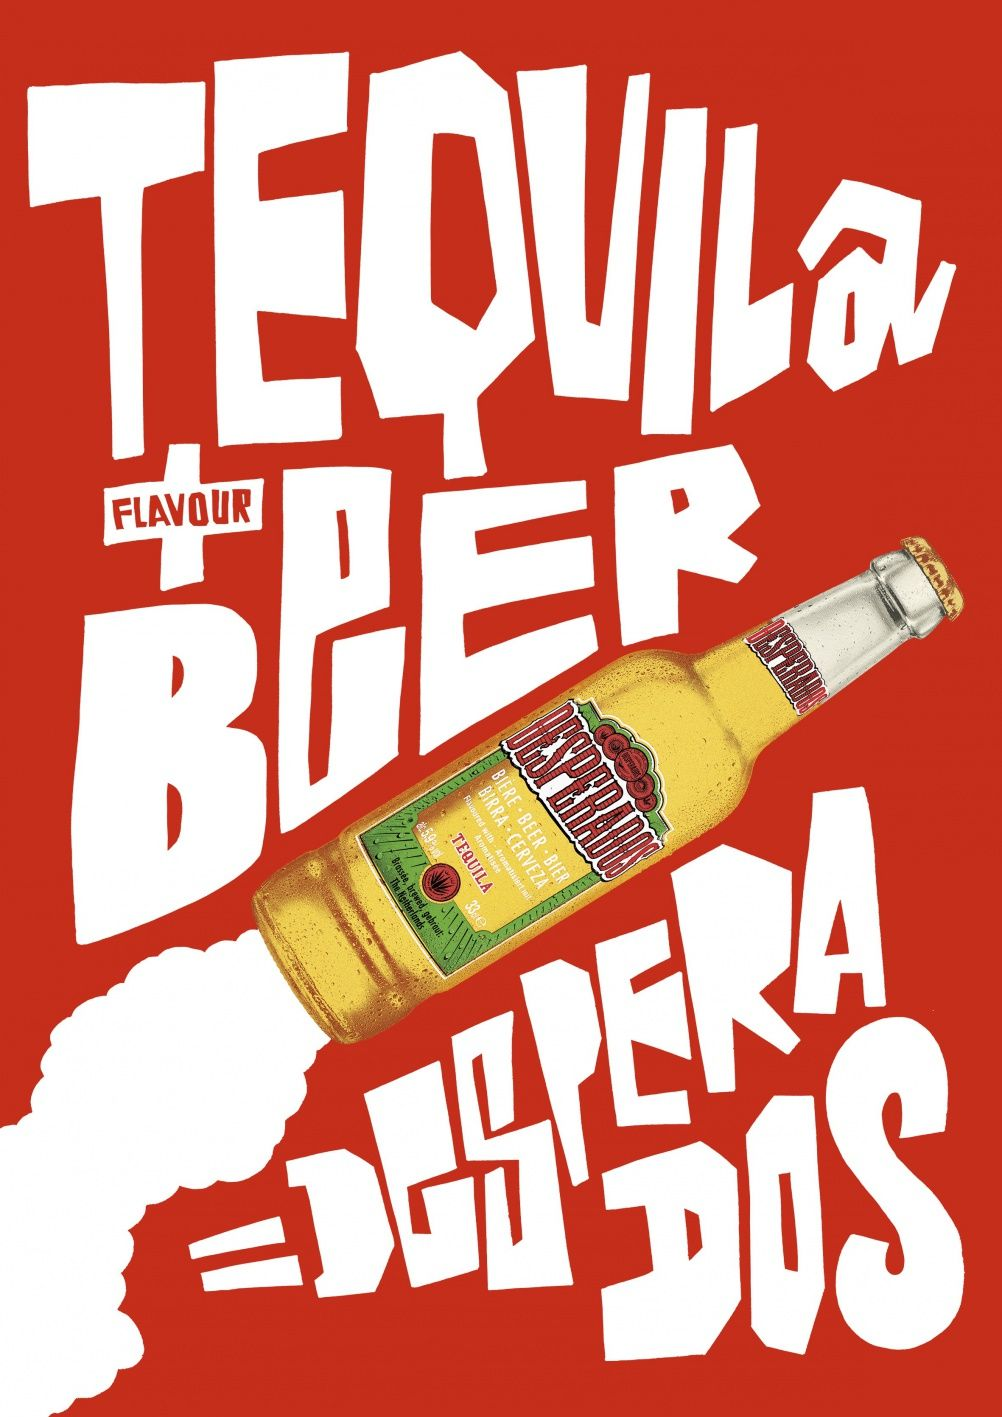 Way Of The Desperados Campaign By Wieden Kennedy Amsterdam Desperado Beer Beer Advertising Beer Ad